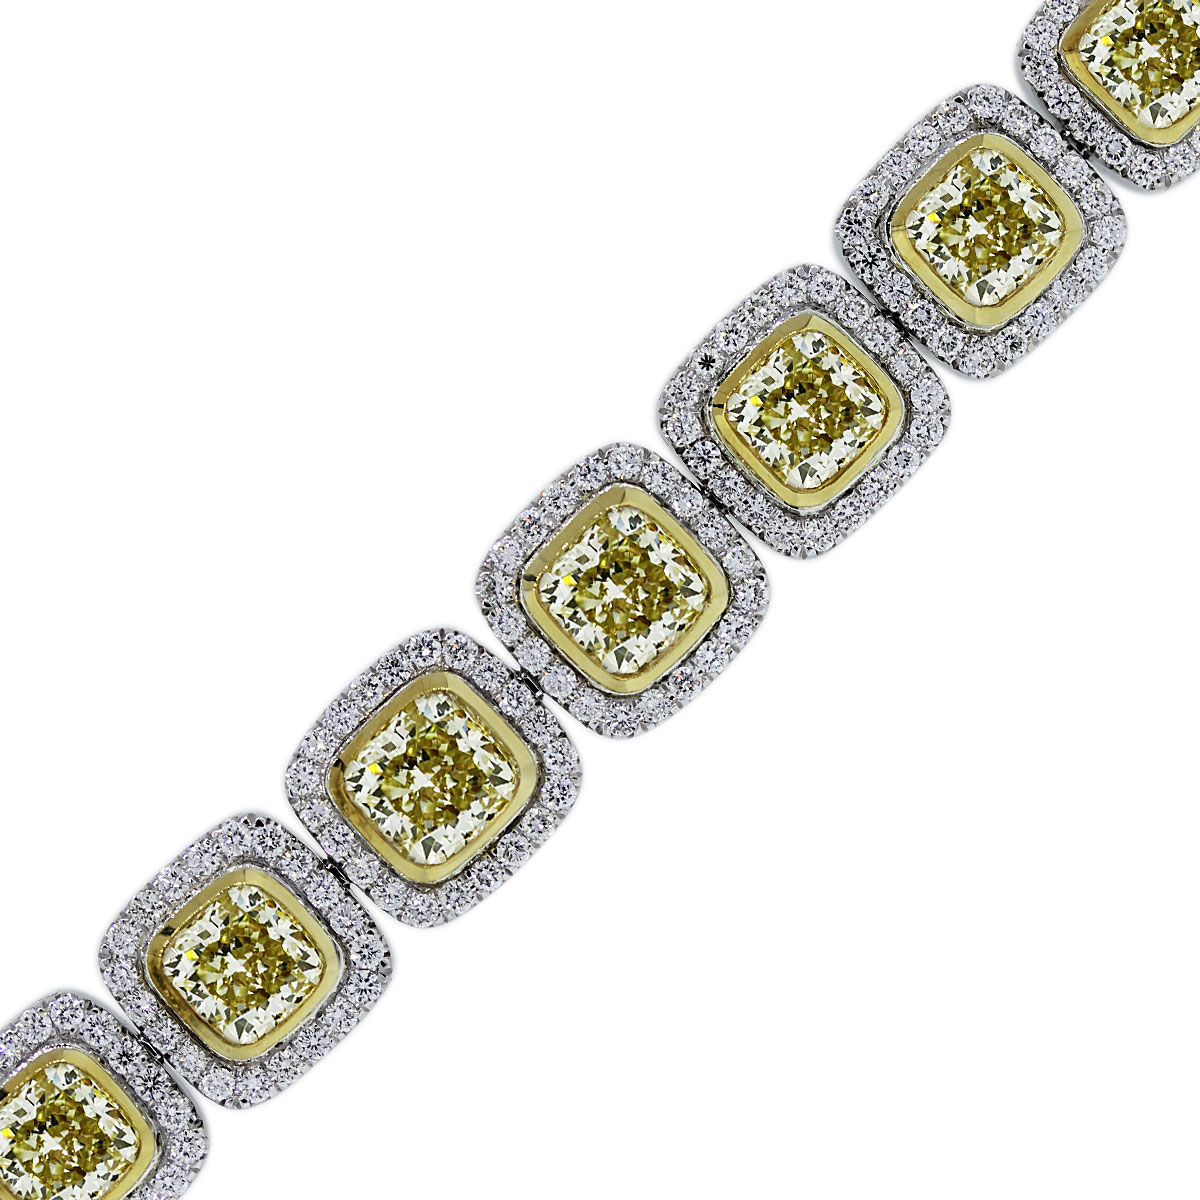 You are Viewing this Yellow Diamond Bracelet!